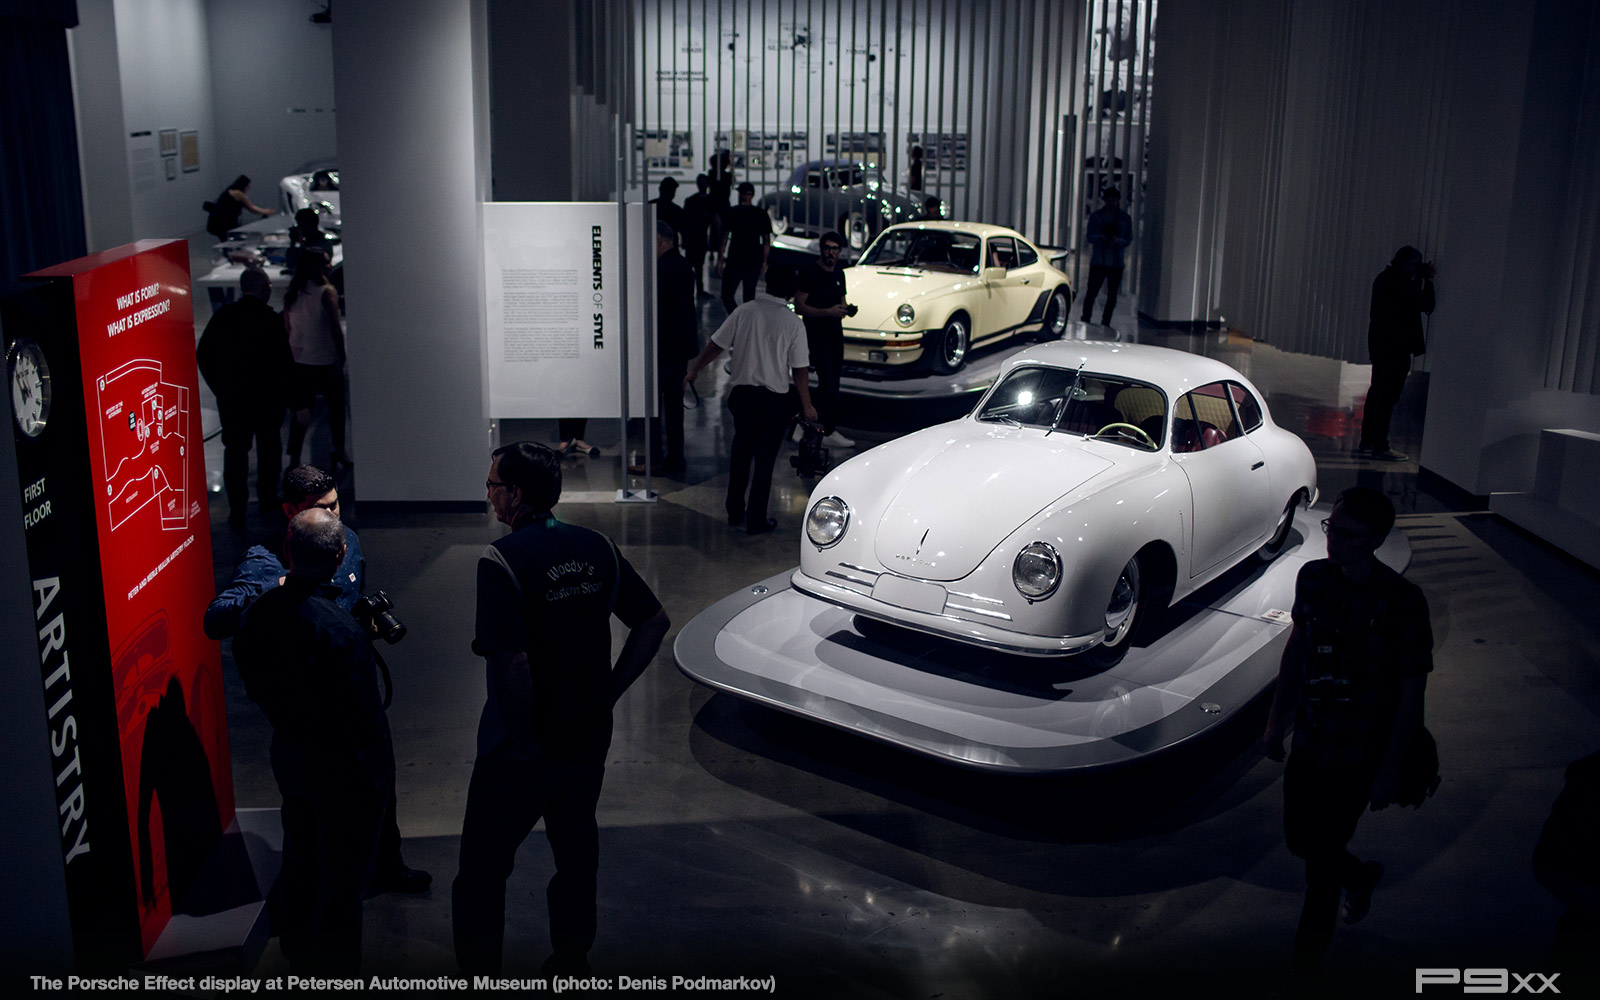 2018-the-porsche-effect-petersen-museum-dpod-299